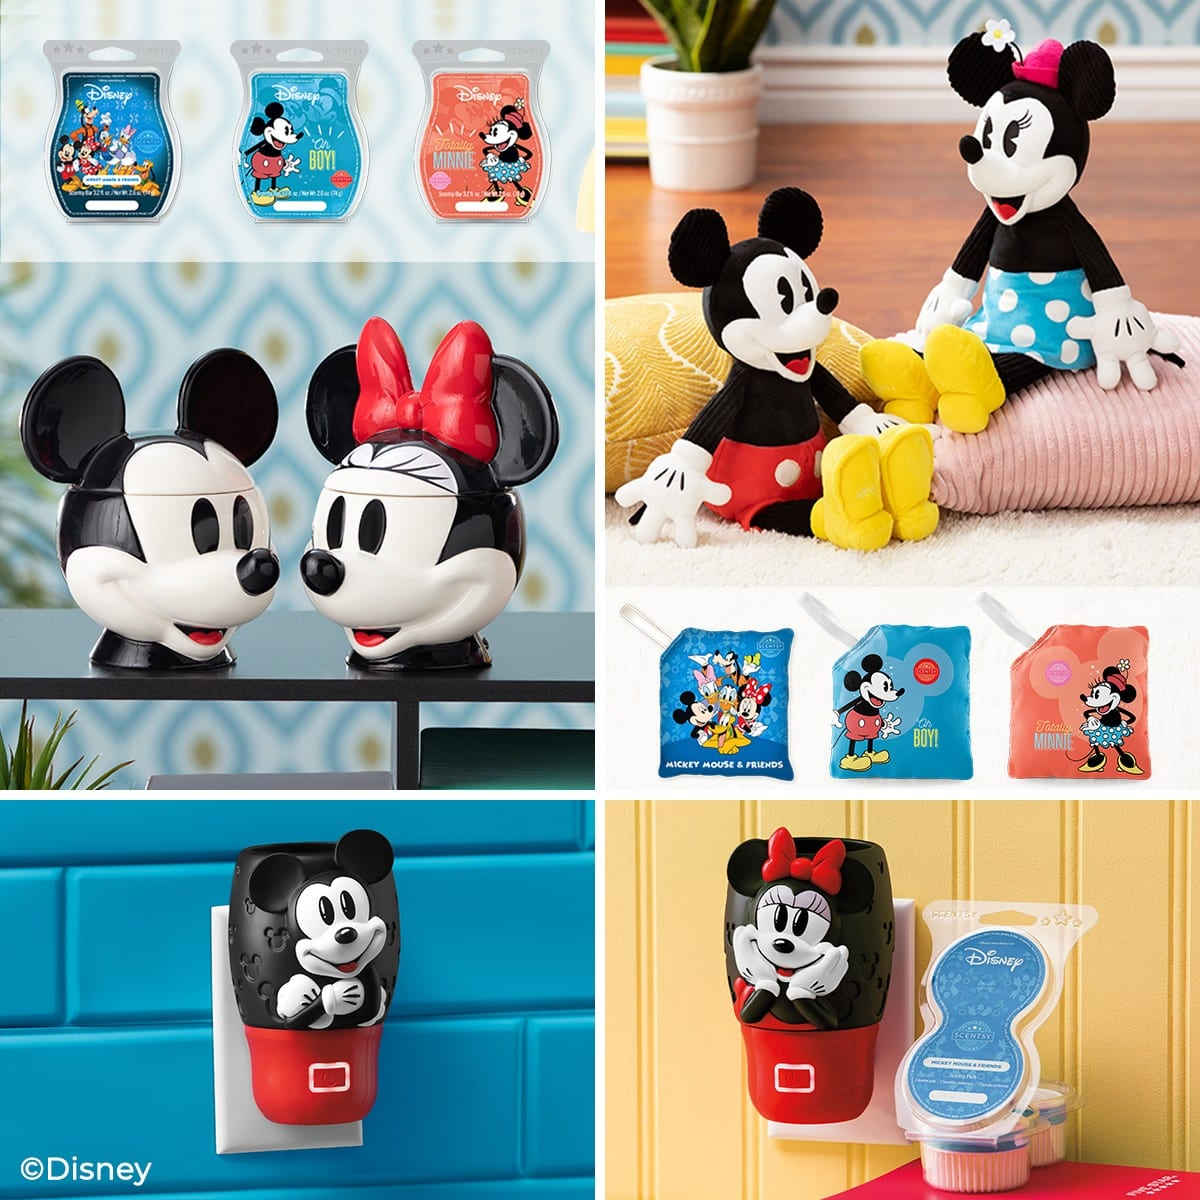 Minnie Mouse Scentsy Wall Fan Diffuser 11 | The Disney Collection From Scentsy | New Fall 2021 Products